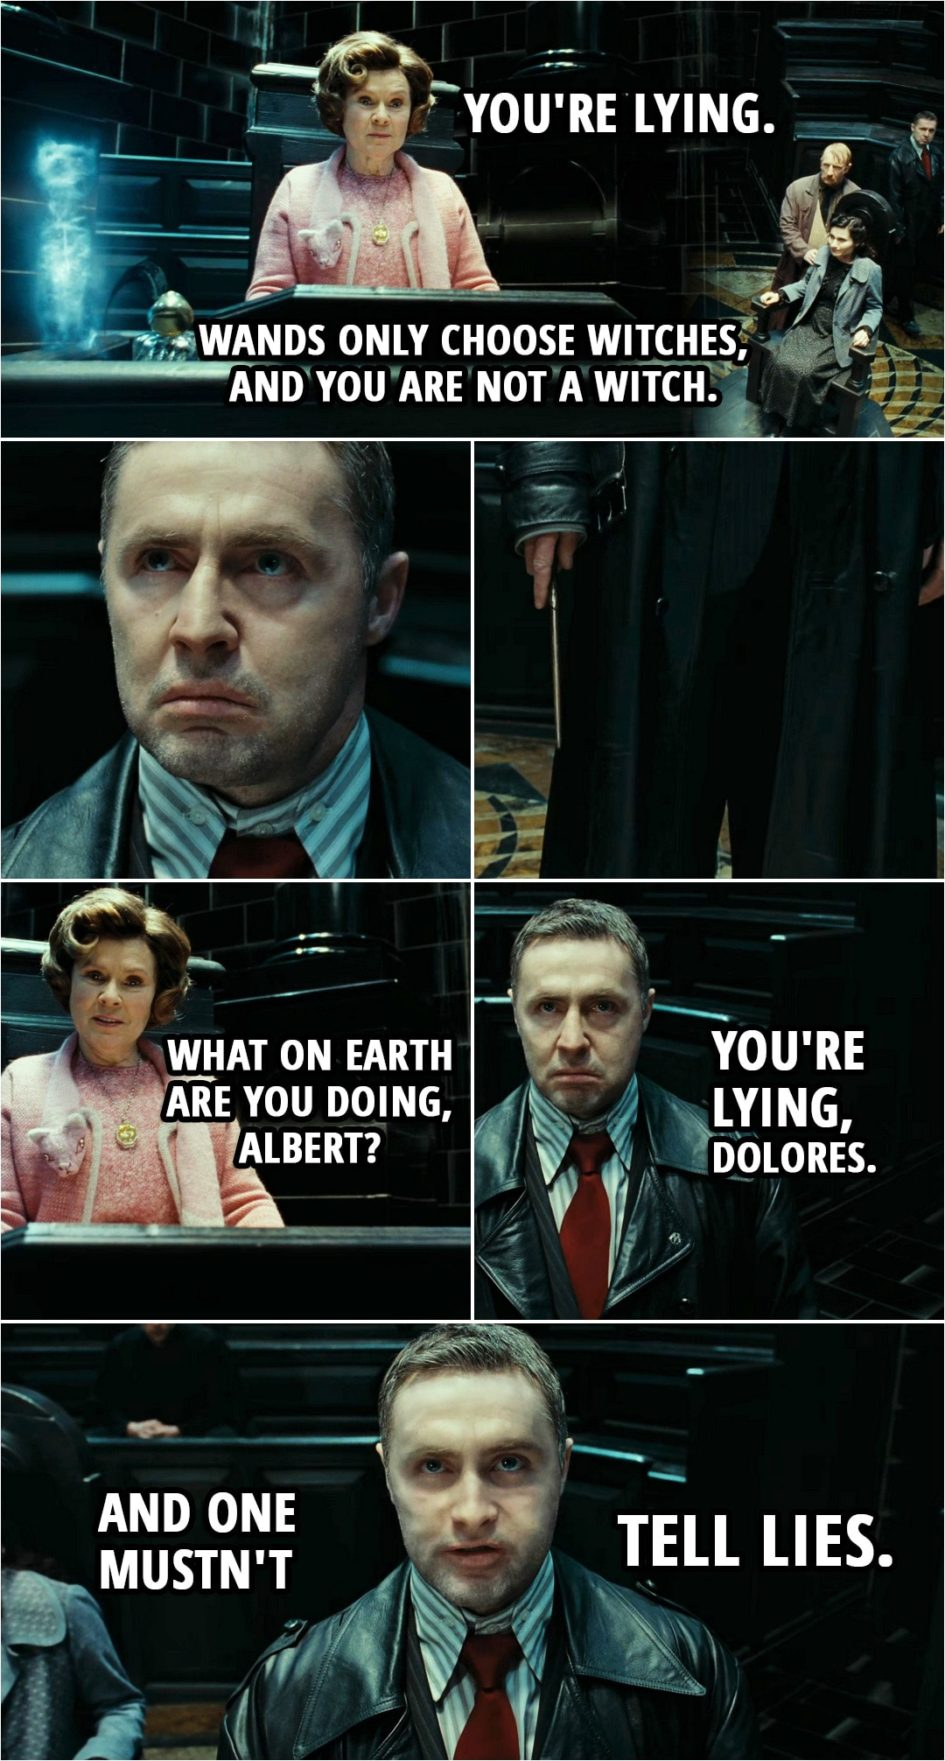 Quote from Harry Potter and the Deathly Hallows: Part 1 (2010) | Dolores Umbridge: You're lying. Wands only choose witches, and you are not a witch. Mary Cattermole: But I am. Tell them, Reg. Tell them what I am. Reg, tell them what I am. Dolores Umbridge: What on earth are you doing, Albert? Harry Potter (lookin' like Runcorn): You're lying, Dolores. And one mustn't tell lies.